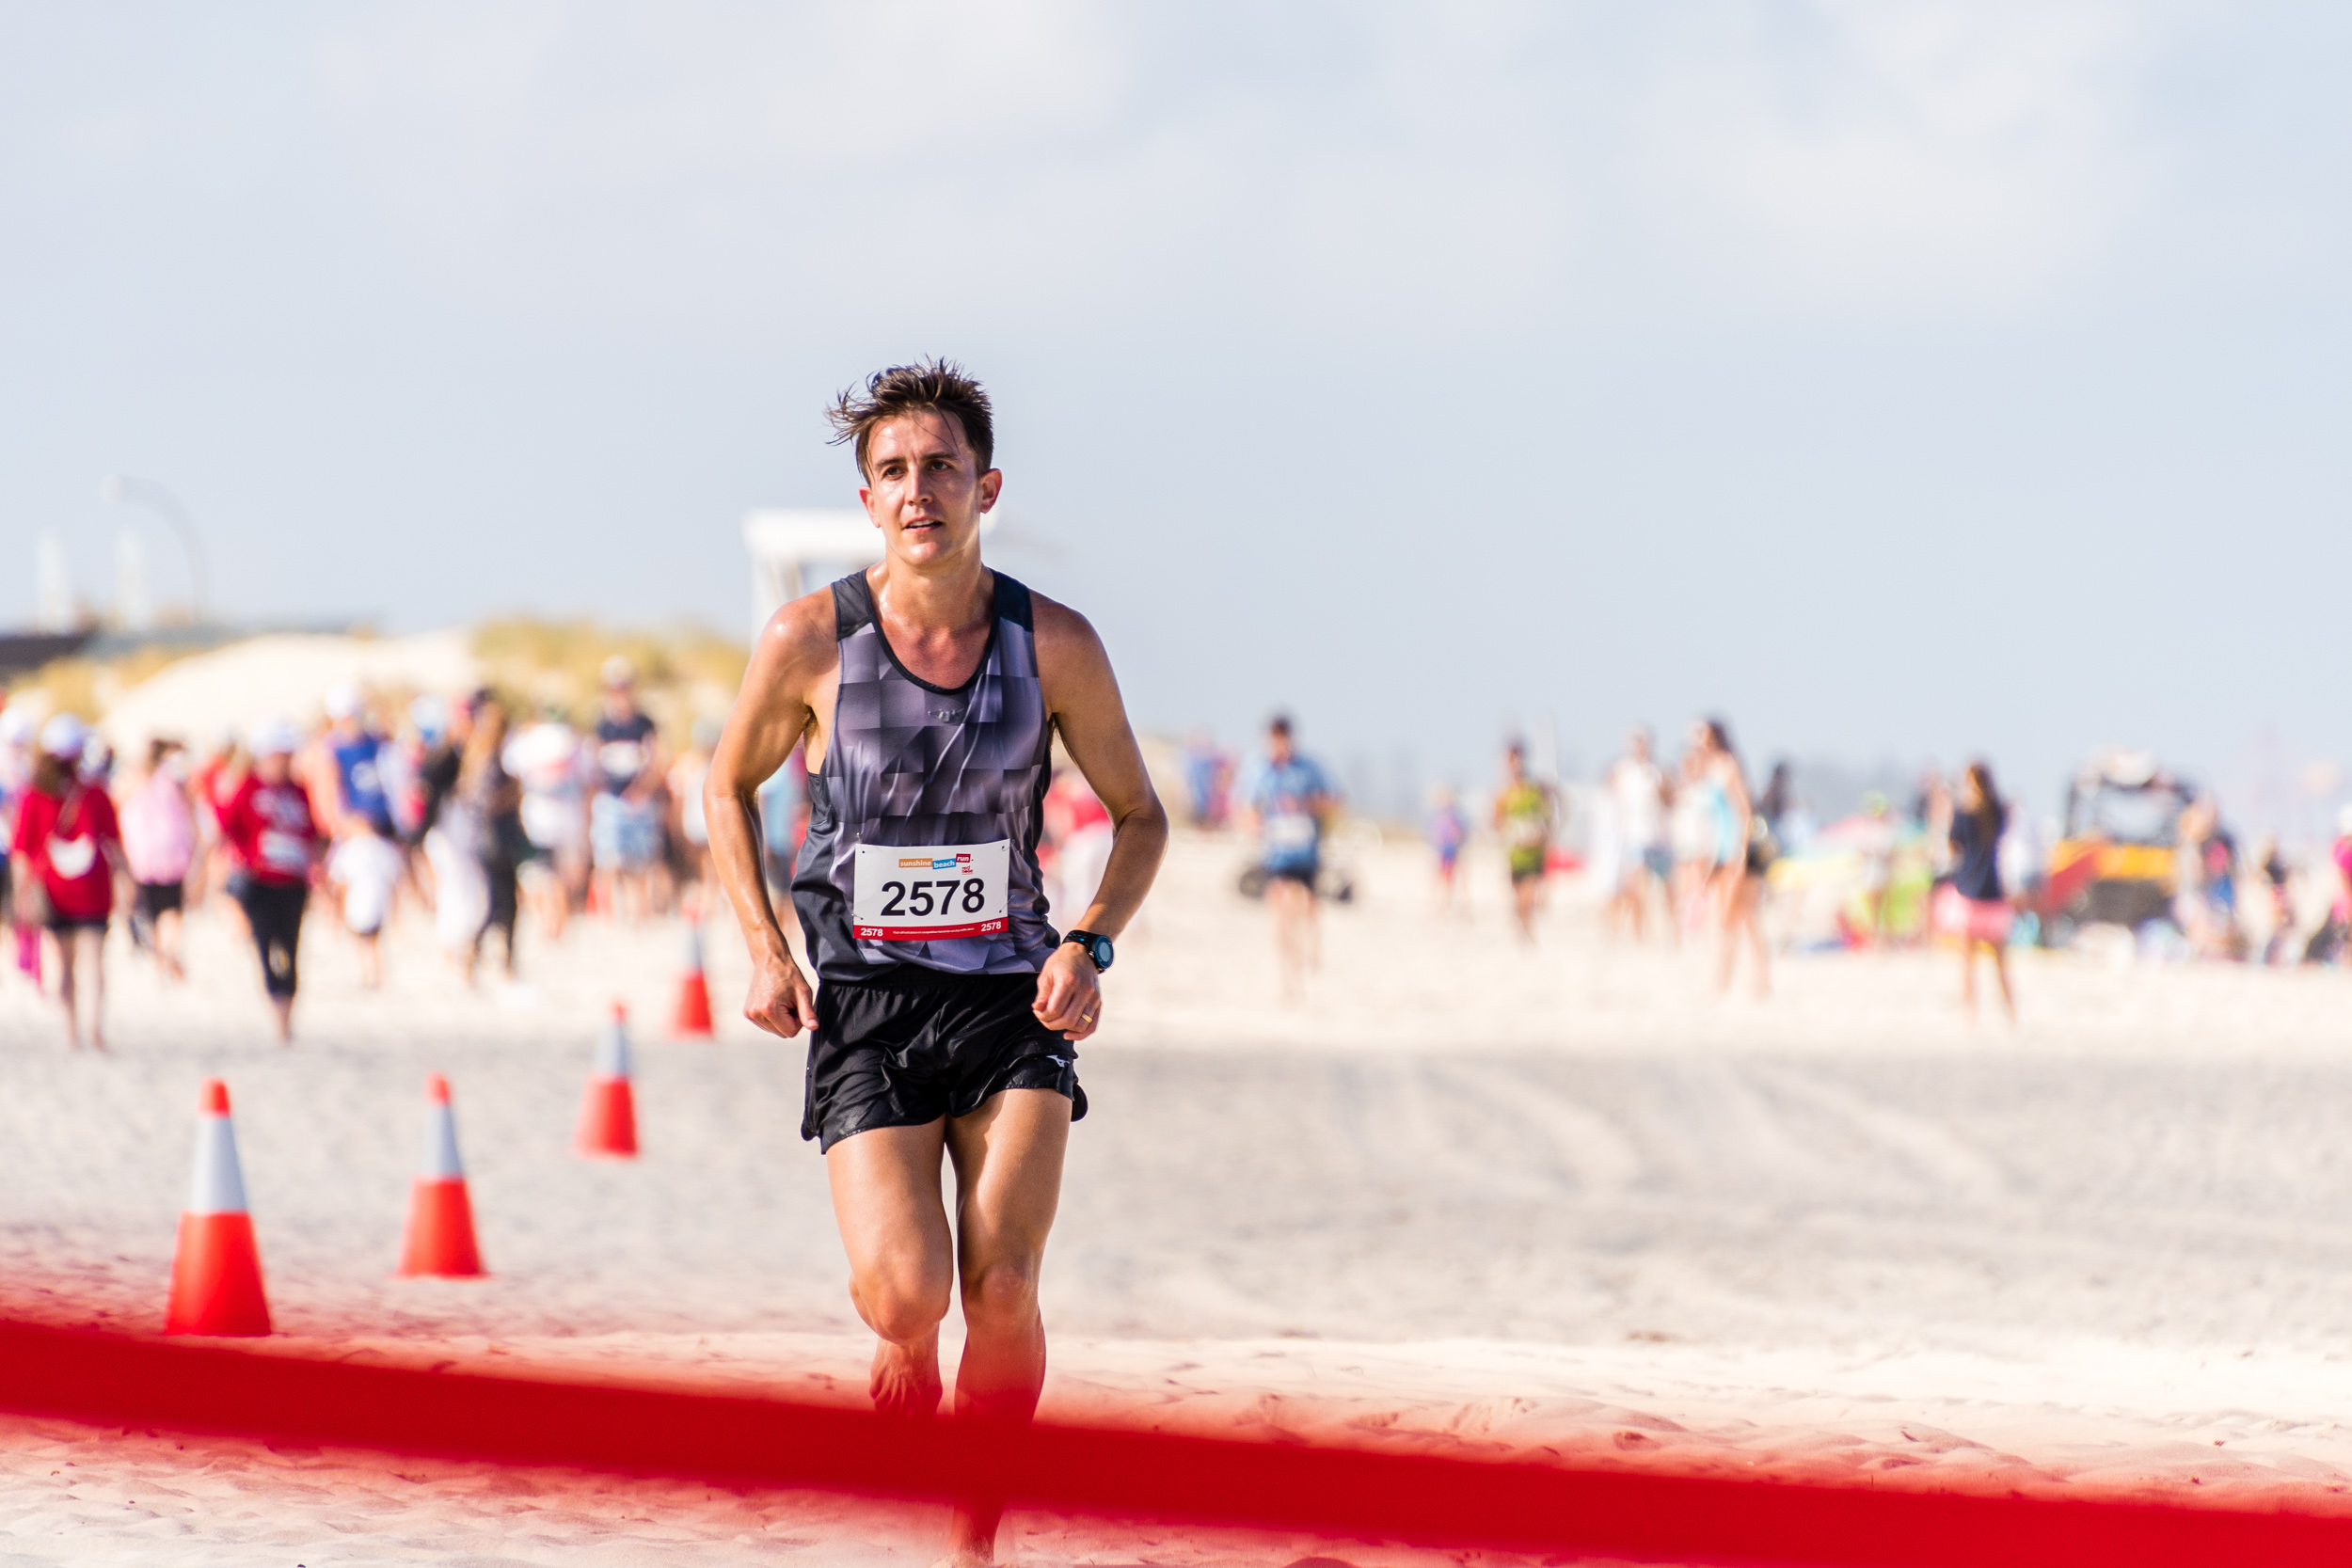 Spyrides_Kyle_Sunshine_Beach_Run_18.2.2018_DSC9328.jpg